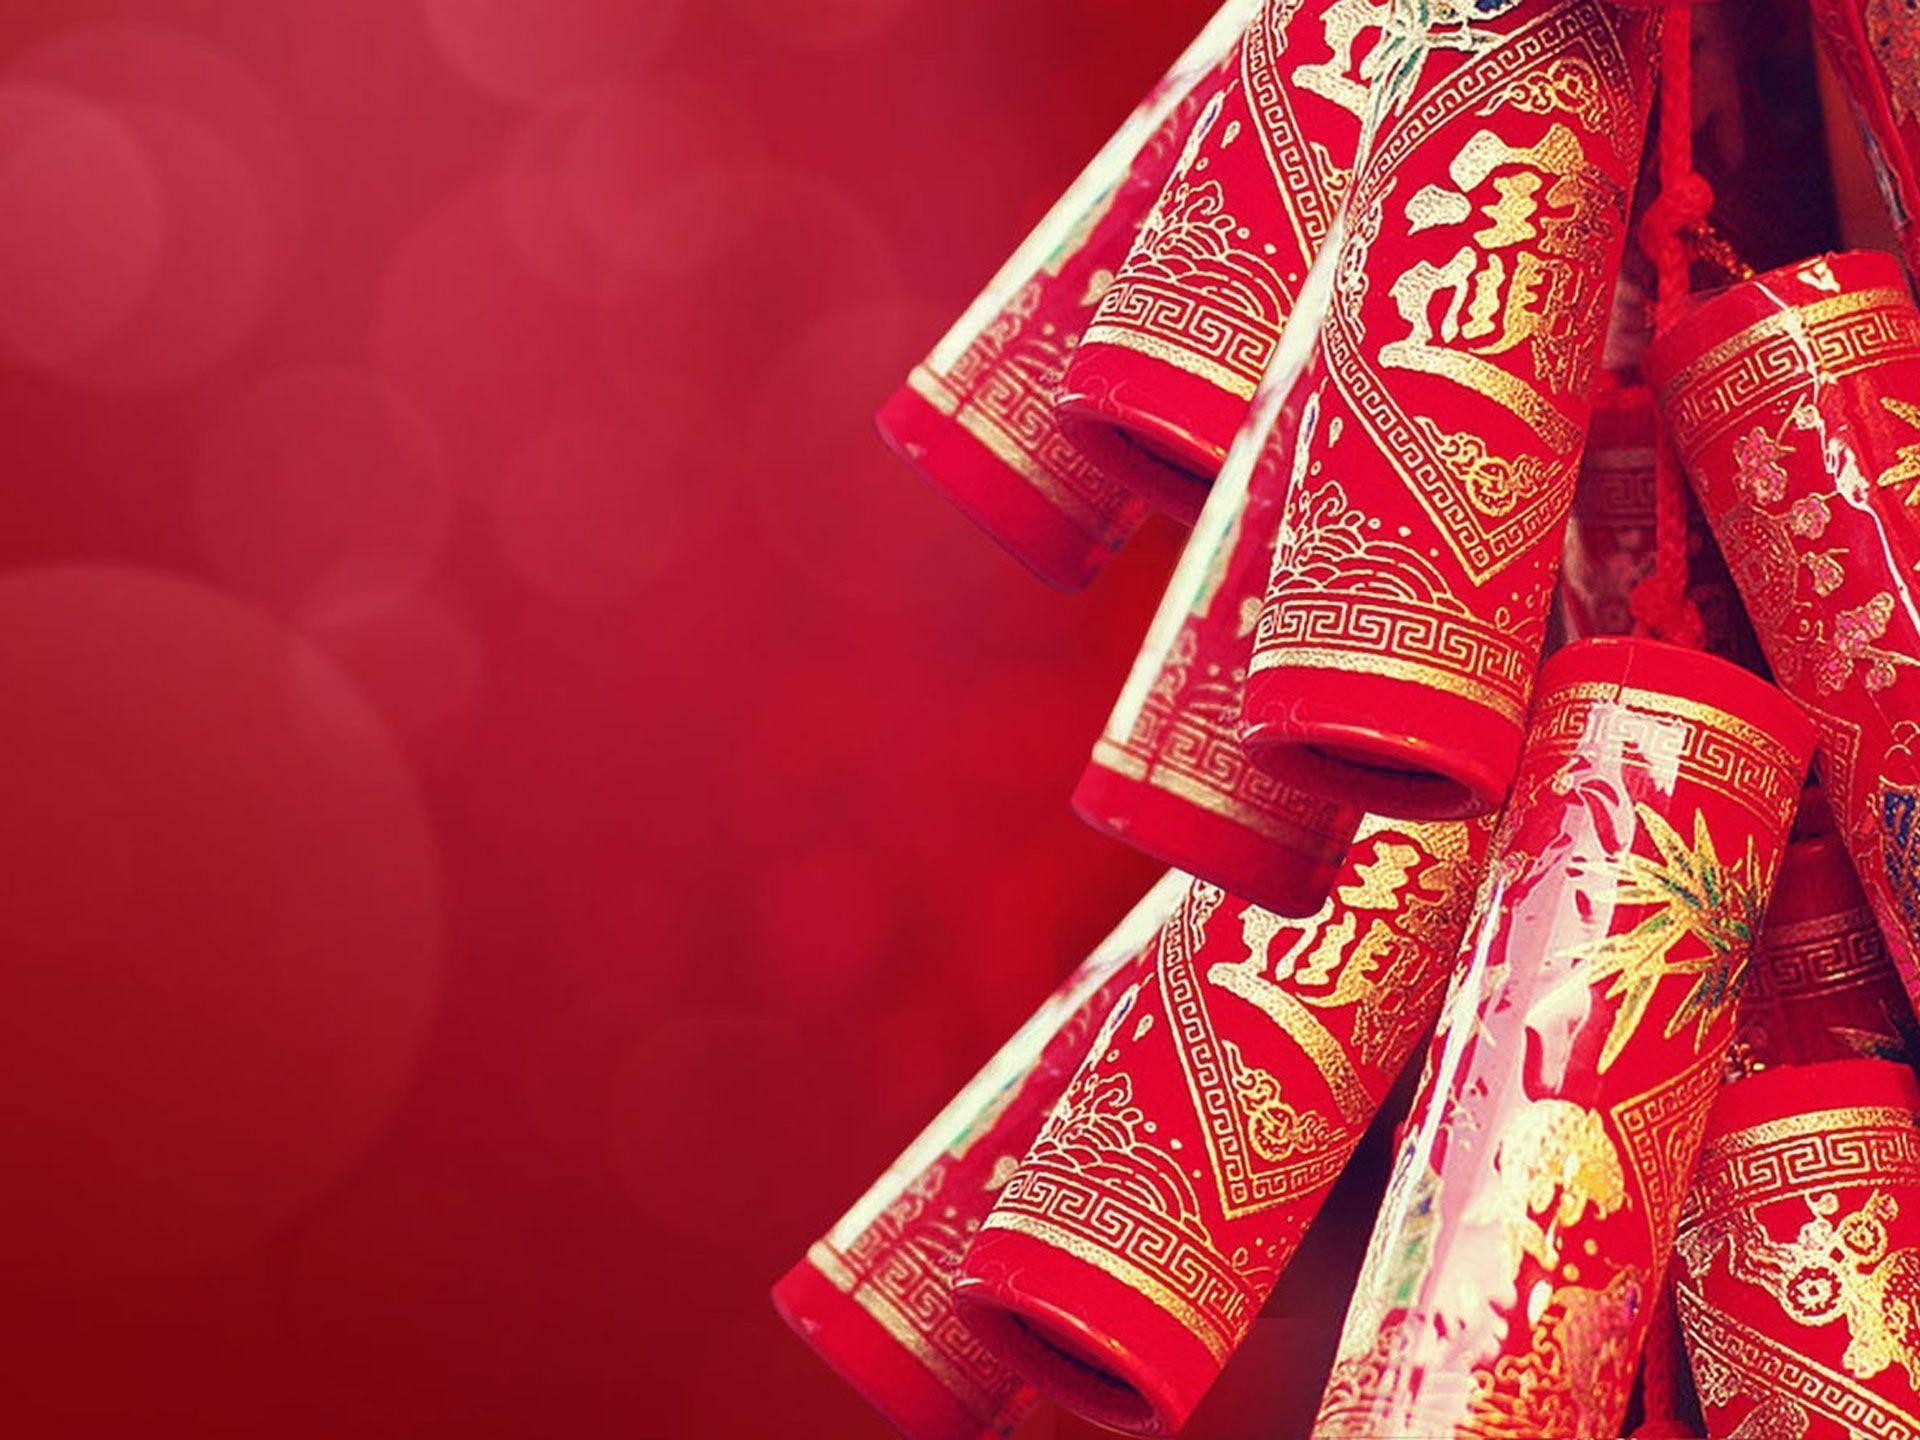 Chinese New Year Wallpaper HD | HD Wallpapers, Backgrounds, Images .